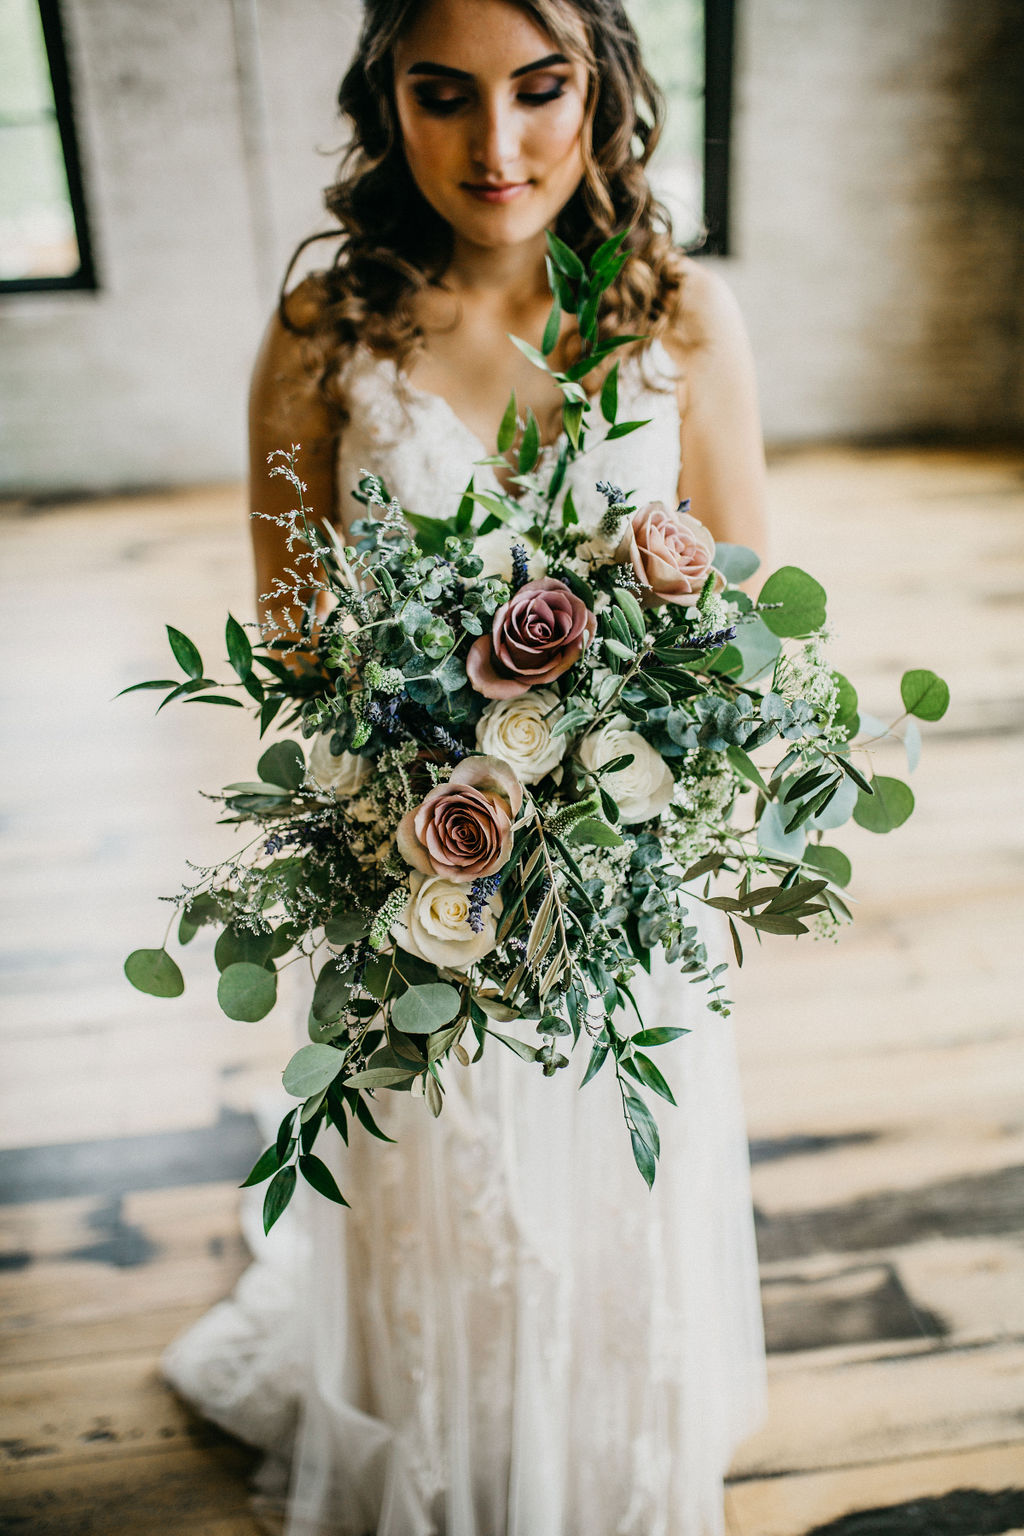 A bride with her bouquet